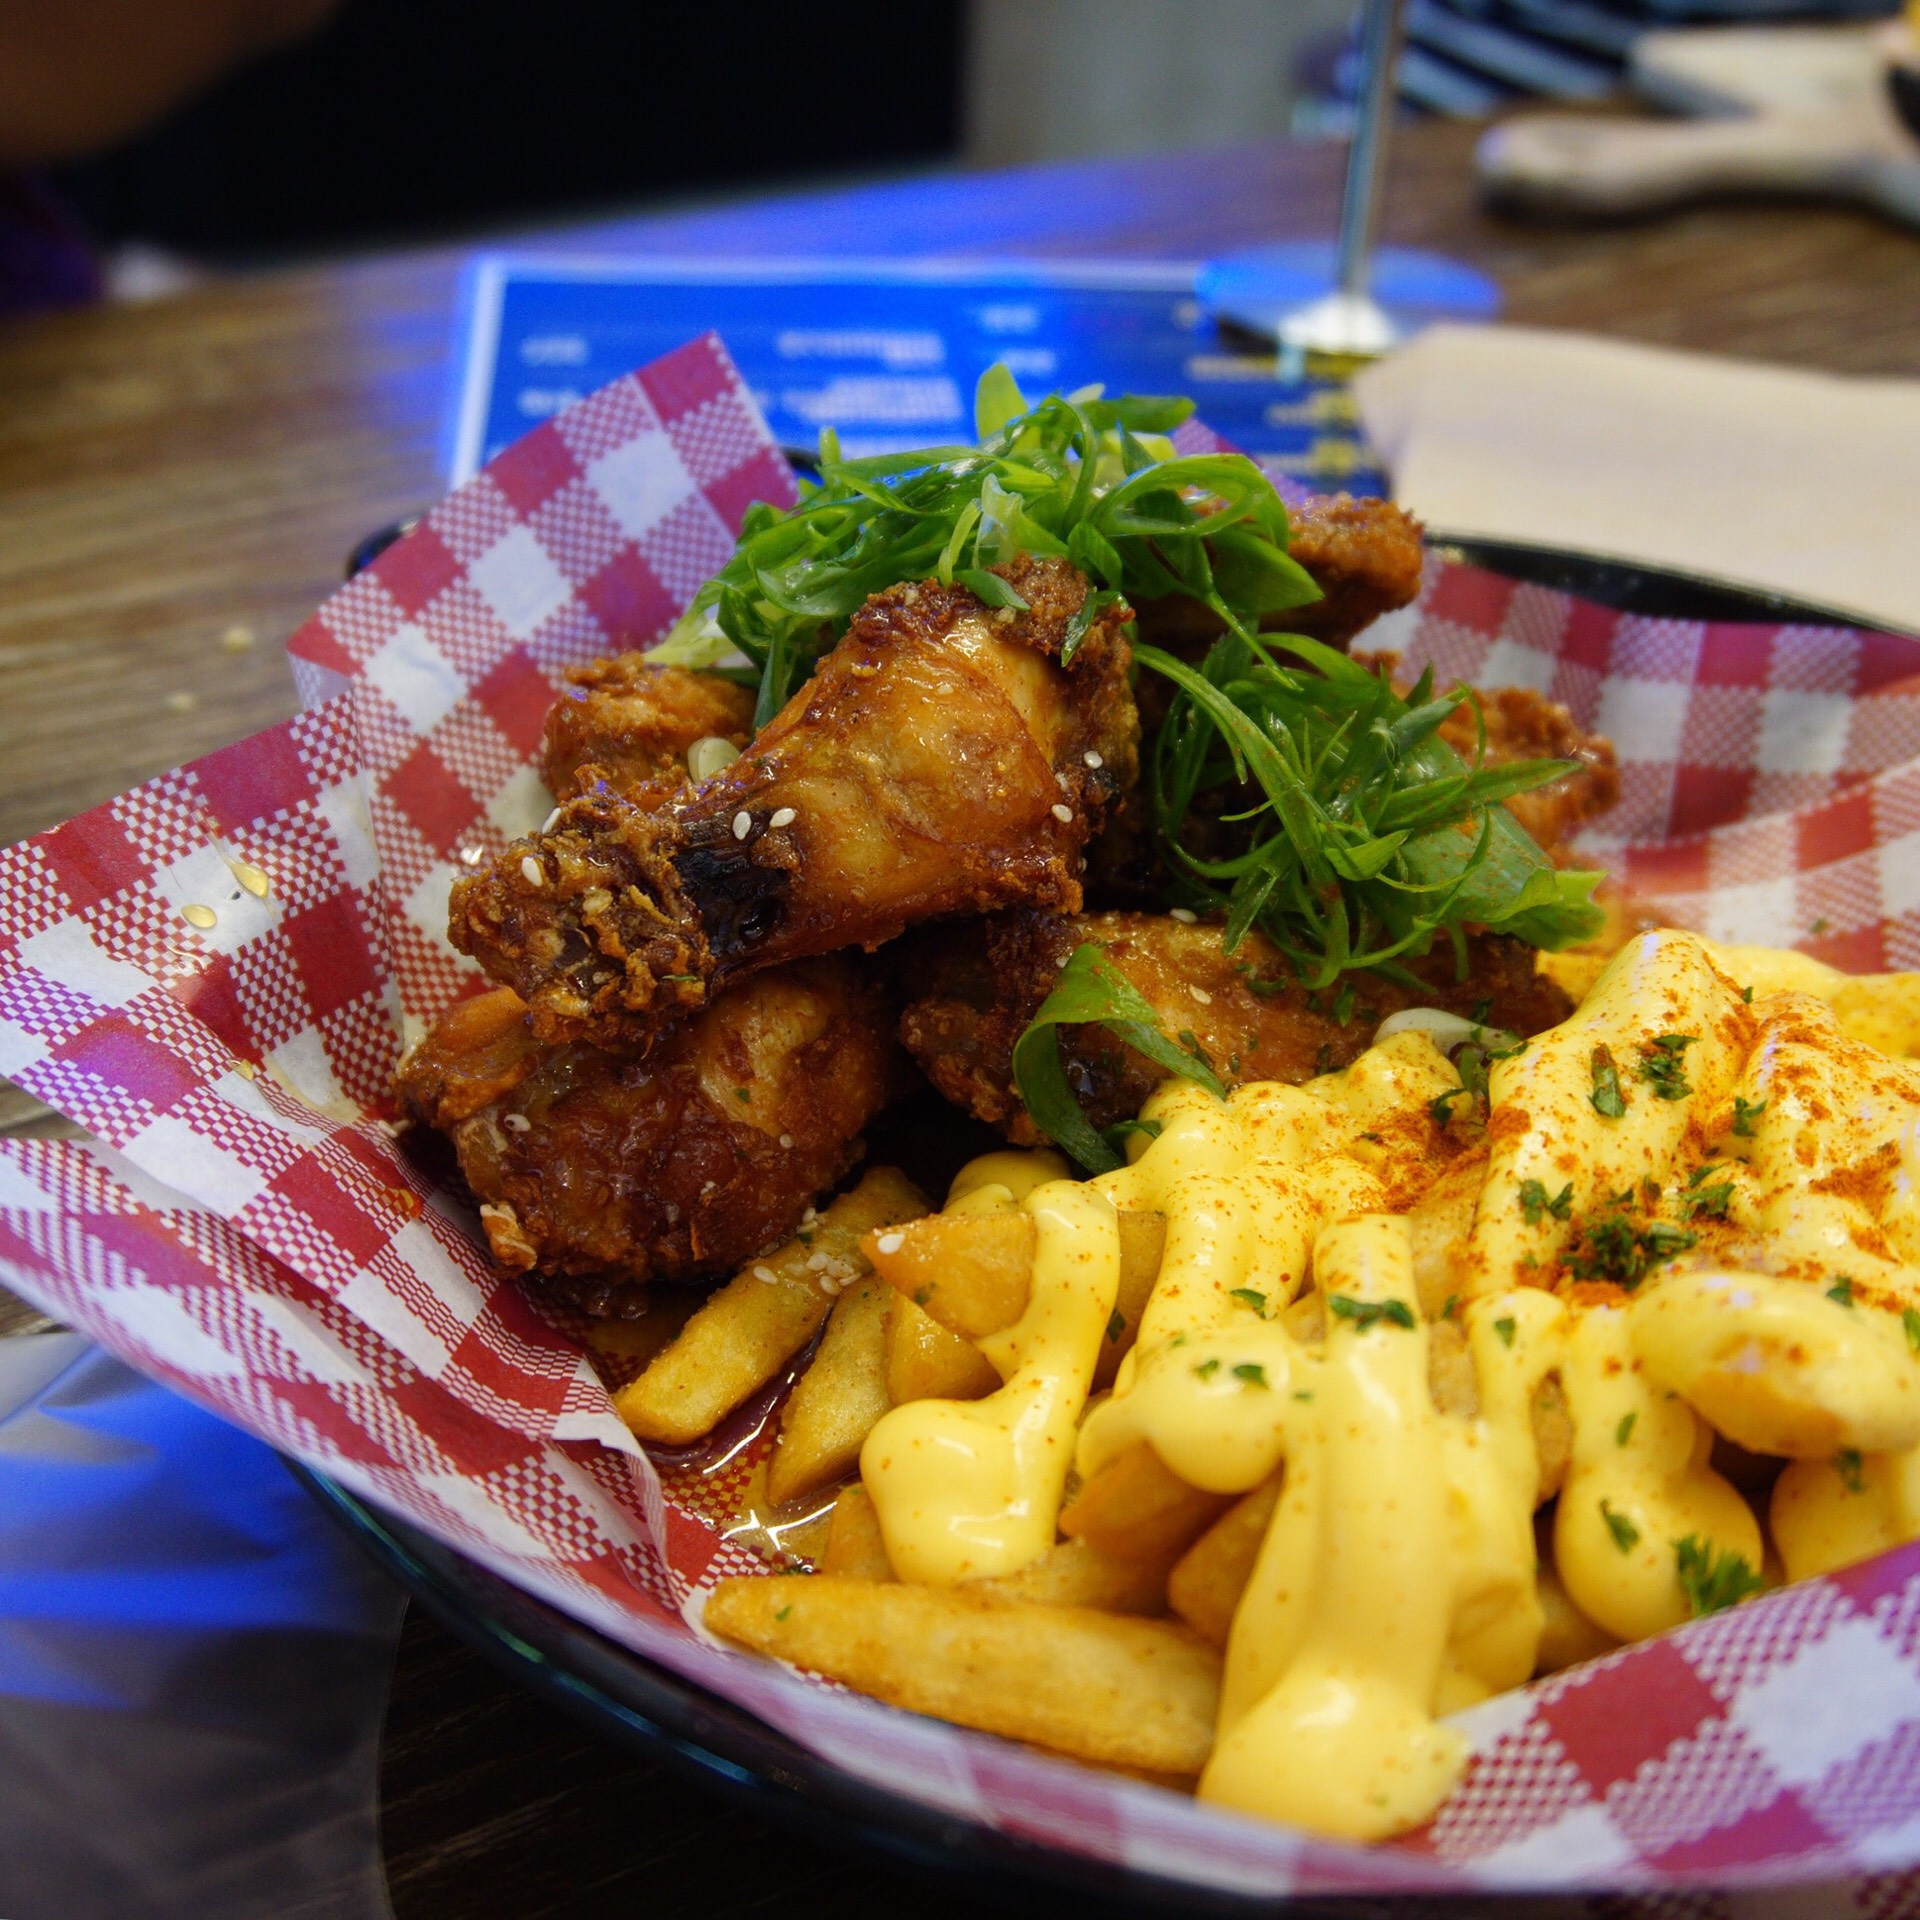 Sweet & sticky fried chicken with cheesy chips